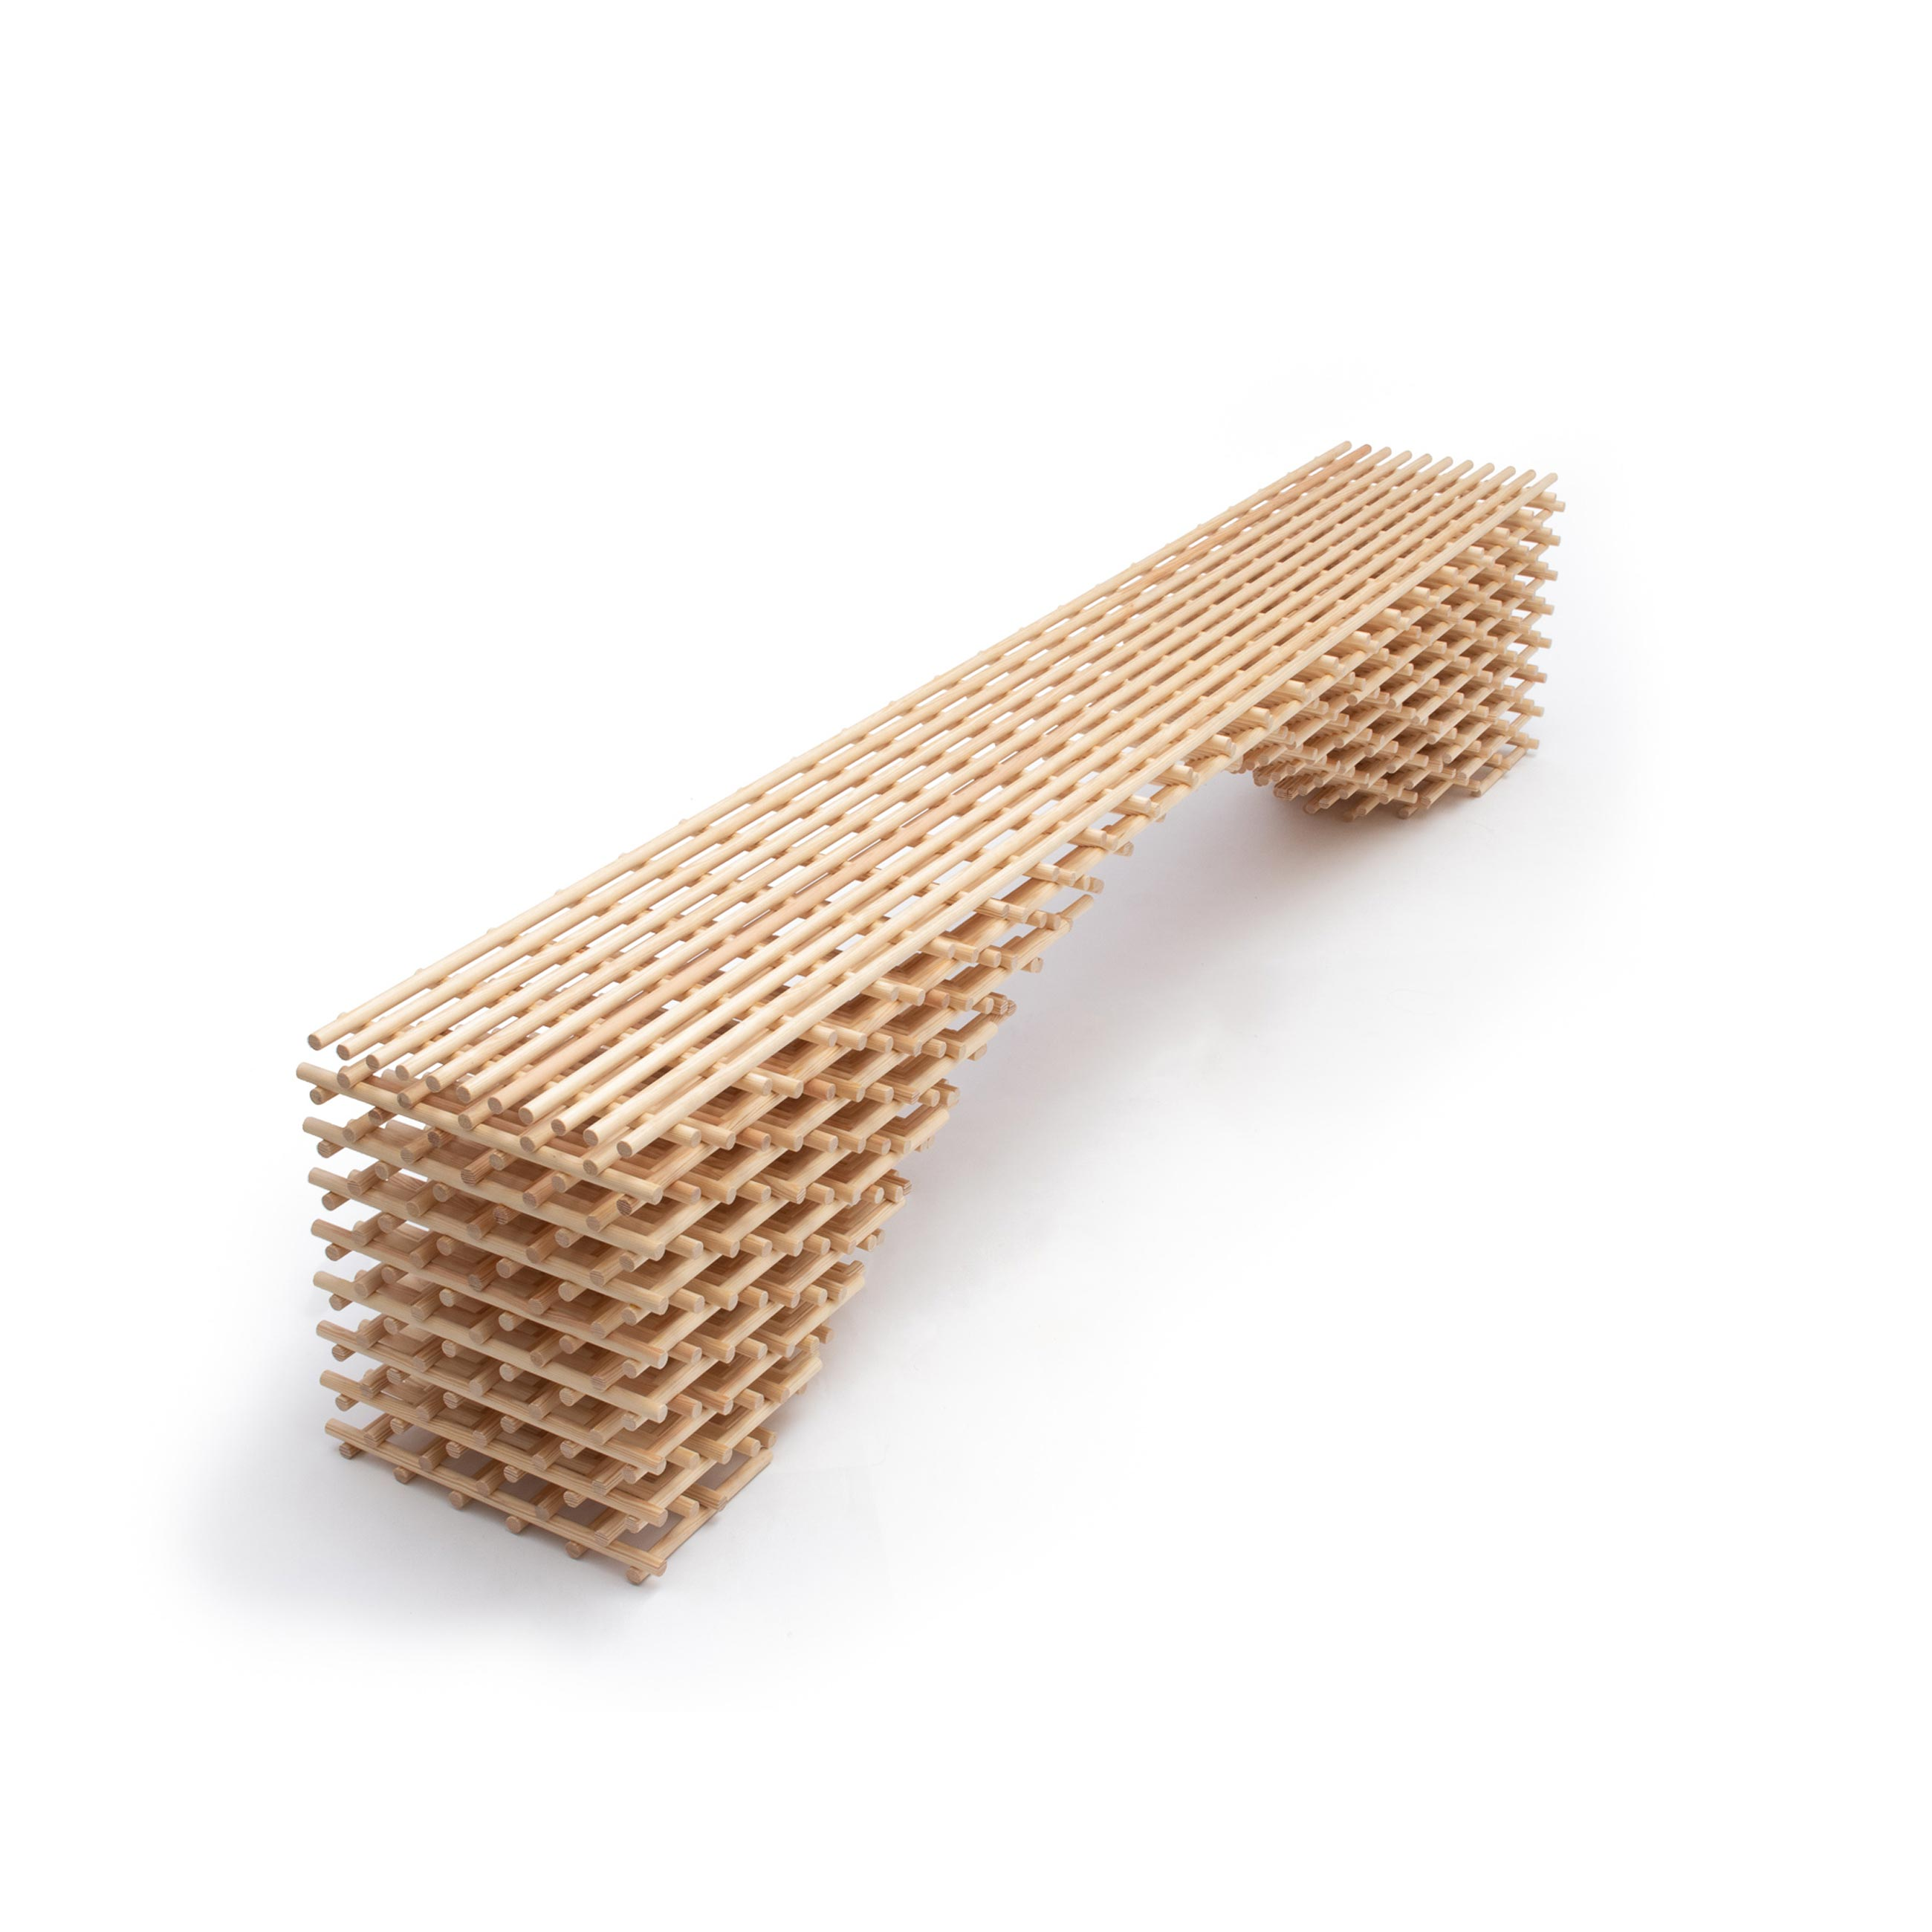 """Brodie Neill Latitude Bench - <p>Longstanding champion of upcycling waste into new material streams, Brodie has reused 422 dowels to create a sculptural bench, """"Latitude"""". Handcrafted in Brodie's East London studio, """"Latitude"""" uses a lattice-like technique reminiscent of traditional Japanese bamboo constructions where linear elements are bound together to create seemingly simple scaffolding-like structures.  Exhibited at Sketch for London Design Week.</p>  